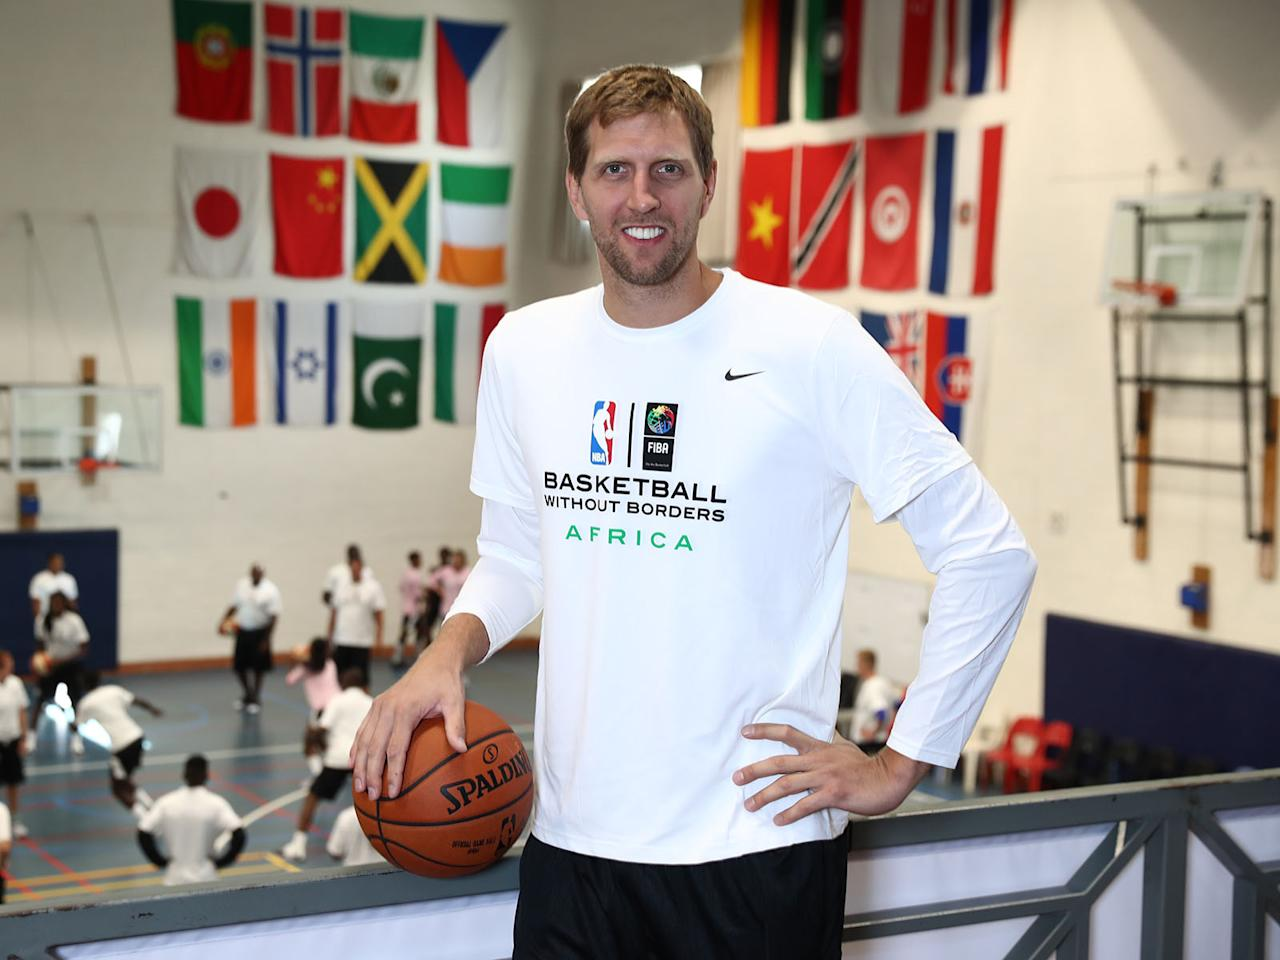 <p>Dirk Nowitzki's name has been synonymous with the Dallas Mavericks for 19 NBA seasons. Over the years, he's logged a lot of miles, playing deep into the postseason, committing to his national team and working hard to improve his craft in the summer.</p><p>In the latest Beyond the Baseline podcast with Jon Wertheim, Nowitzki talked a little tennis, looked back on his journey and discussed his preparation for year No. 20. </p><p></p><p><strong>Jon Wertheim: What is the offseason like for you both physically but also spiritually? What is the summer like, what is this off time like for a basketball player? </strong></p><p><strong>Dirk Nowitzki:</strong> We didn't make the playoffs last season unfortunately, so literally my last game was almost mid-April. The offseason is pretty long, we are very fortunate in basketball. I know the tennis guys have the shortest offseason ever. We have a few months.</p><p>When you're in your 20's you basically take a few weeks off and I was right back in the gym, I was working out in Germany, then I was playing national team every summer from year 20-30, so over 10 years basically every summer I played. And then once I turned 30 and got a little older, I didn't play for national team every summer anymore. That meant I had more time. We have three kids now so I get to spend a lot of time with them in the summer, we do travel a lot now since my wife and I are both from Europe, born and raised, so we go back home to Germany and Sweden, went to Africa this summer for a few weeks. Wifey has some ties there. </p><p>We were on the road for a good six or seven weeks and had a good time, and I'm trying to get back in it, which is harder as you get older. I turned 39 this summer and just working my way back the last two weeks hasn't been easy. I've been going hard six days a week the last three weeks, just trying to get back into game shape and get ready for camp.</p><p></p><p><strong>Wertheim: So 39 years old a generation ago, with the exception of Kareem, it's unheard of. In tennis it's the same. What do you think it is? Is it the technology? Is it the training? Is it the money that gives you incentive not to retire?</strong></p><p><strong>Nowitzki:</strong> It might be a complete package of all of that. I'm not sure they play for money, I'm sure they've made enough throughout their careers. I think it's some of the training, I think the knowledge we have now we didn't have 20 years ago. How much of a difference the training, the weight room, the stretching, the nutrition is a big part.</p><p>So I think that's a major part for sure and guys are able to compete for a longer time, and you see some of the older players in the NBA still able to play efficient. And obviously you're losing a step, but I think you're able to make it up by experience and just keeping your body sill in good shape, and you're able to play until your late 30's these days. I don't think it's anything abnormal anymore.</p><p><strong>Wertheim: Did you ever know your body better than you know it now?</strong></p><p><strong>Nowitzki:</strong> In your 20's you don't know anything. We used to have cheeseburgers before games and had no problems and went out there and played. And as you get older and older, I think you learn more about your body and say, 'Ok, this is not good. Too much sugar during the season hurts my feet.' Just little things that are crazy, so you're trying to just eat as clean as you can and listen to your body.</p><p>The last couple years I haven't really played back-to-backs. Last year for the first time I had an Achilles problem so I missed two months. It's unfortunate but it's something you deal with everyday, you get a routine, you do your stretching, you do your strengthening, you get some shots up and then you kind of see how you feel from day to day and make the decision. Is today the day we push? When should we pull back a little bit? And I'm sure it's the same with Roger and all these guys. It's constant conversation with your trainers and your weight coach to get ready for the next tournament in their case or the next game in our case.</p><p></p><p><strong>Wertheim: We were talking about how it's the same way you guys say listen, 'I might not play 82 games, I'll tell you that right now.' The same way Roger took off the clay season. If that's going to prolong Federer's career, if that's going to prolong your career…</strong></p><p><strong>Nowitzki:</strong> Yeah, I only played 82 maybe a couple times in my career early on. It's hard to be ready every night and I actually used to be proud of playing 82, but little things happen all the time, especially once you're older. We want to be a playoffs team, always have, so you don't wan to burn yourself out during the regular season. You want to go into the playoffs feeling pretty fresh. In Roger's case, it made sense. He played a fantastic season this year.</p>